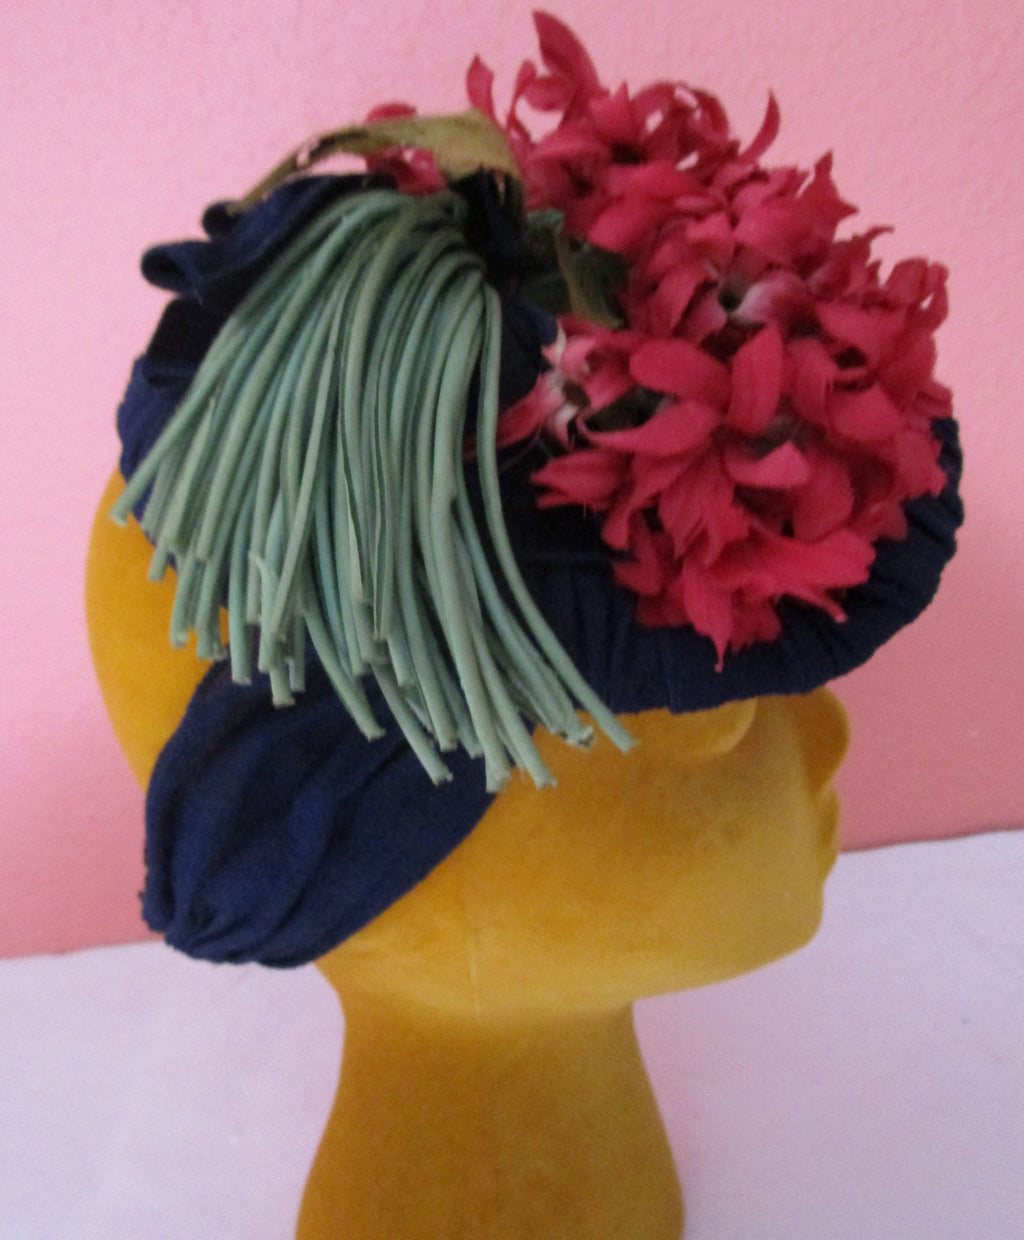 Vintage 1940s Rayon Crepe Snood Scarf Hat Navy Button Silk Flower Nosegay WW2 Fascinator